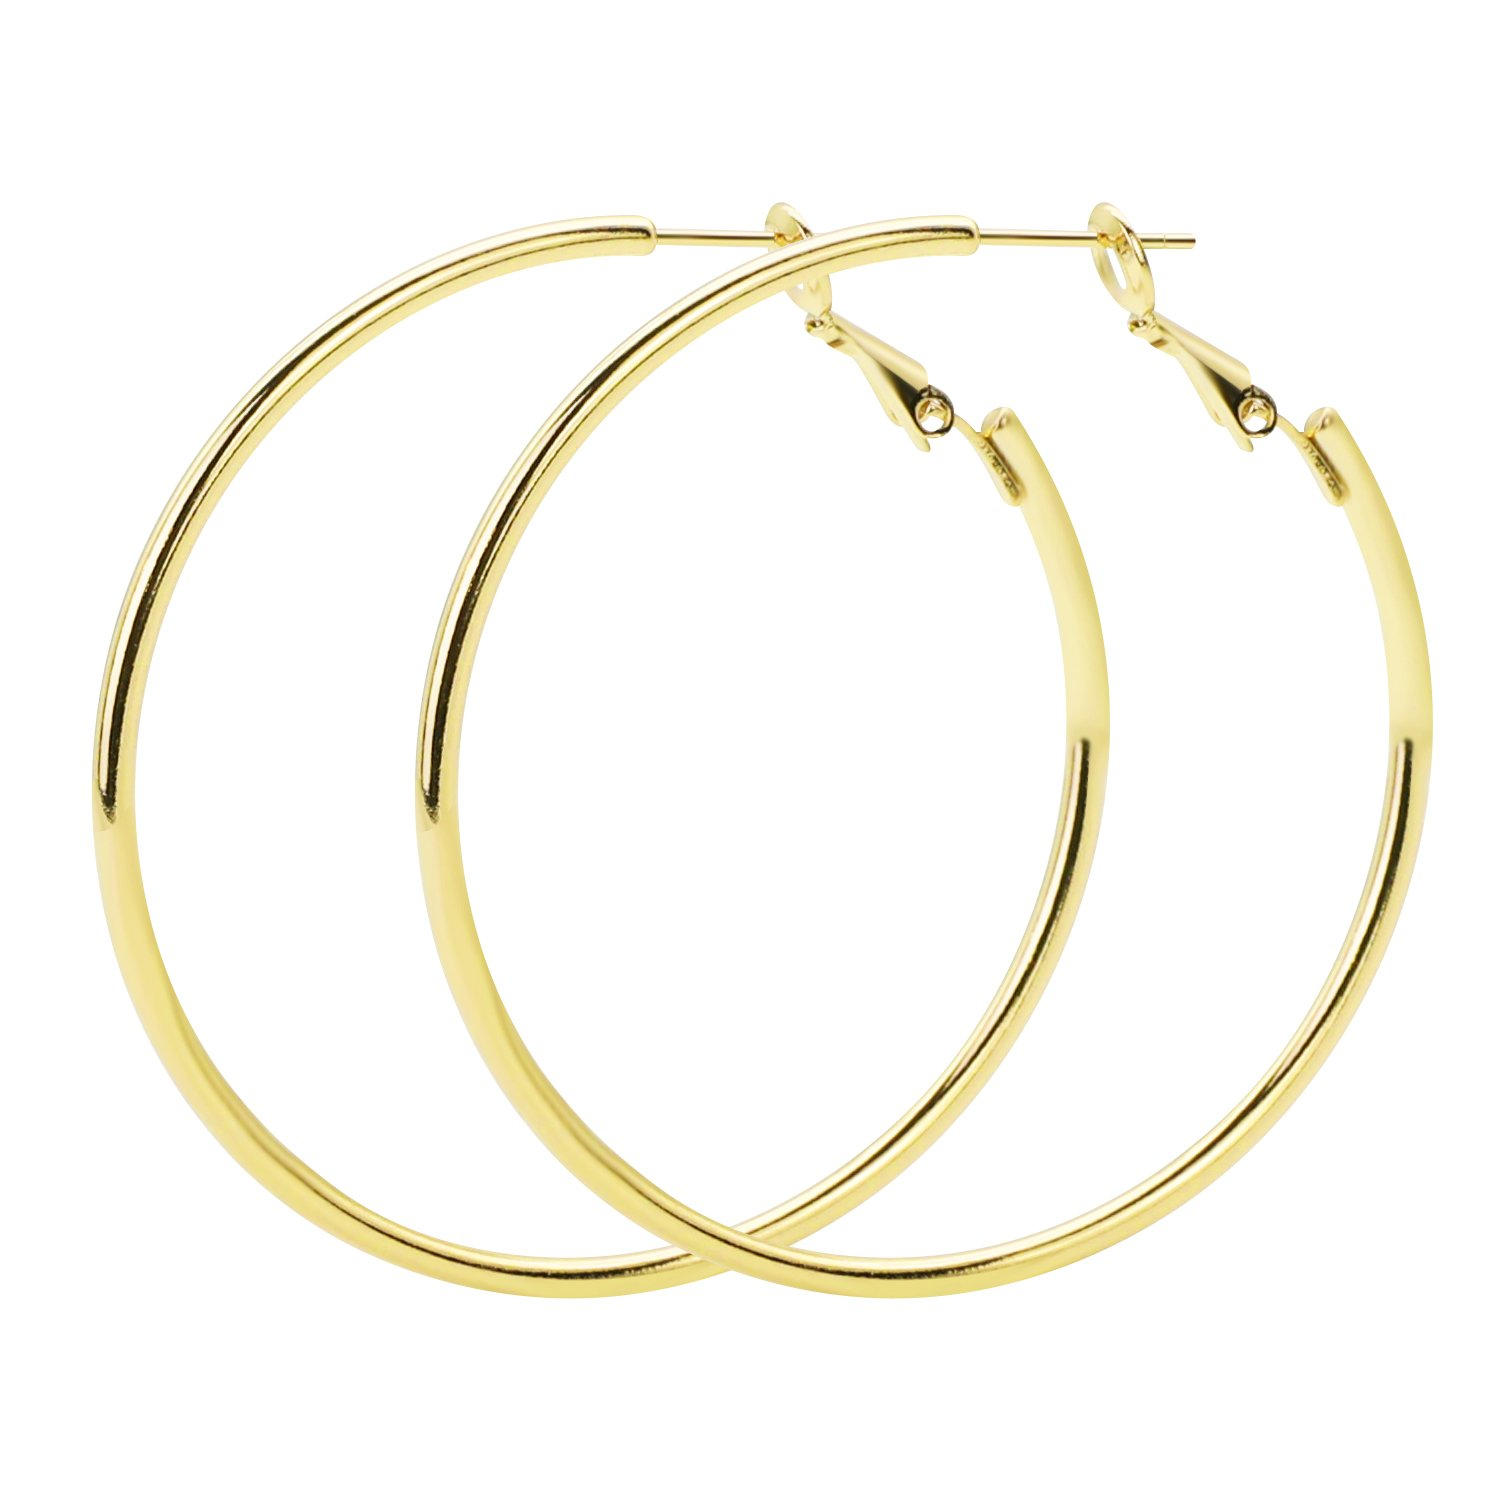 Rugewelry 925 Sterling Silver Hoop Earrings,18K Gold Plated Polished Round Hoop Earrings For Women,Girls' Gifts Girls' Gifts